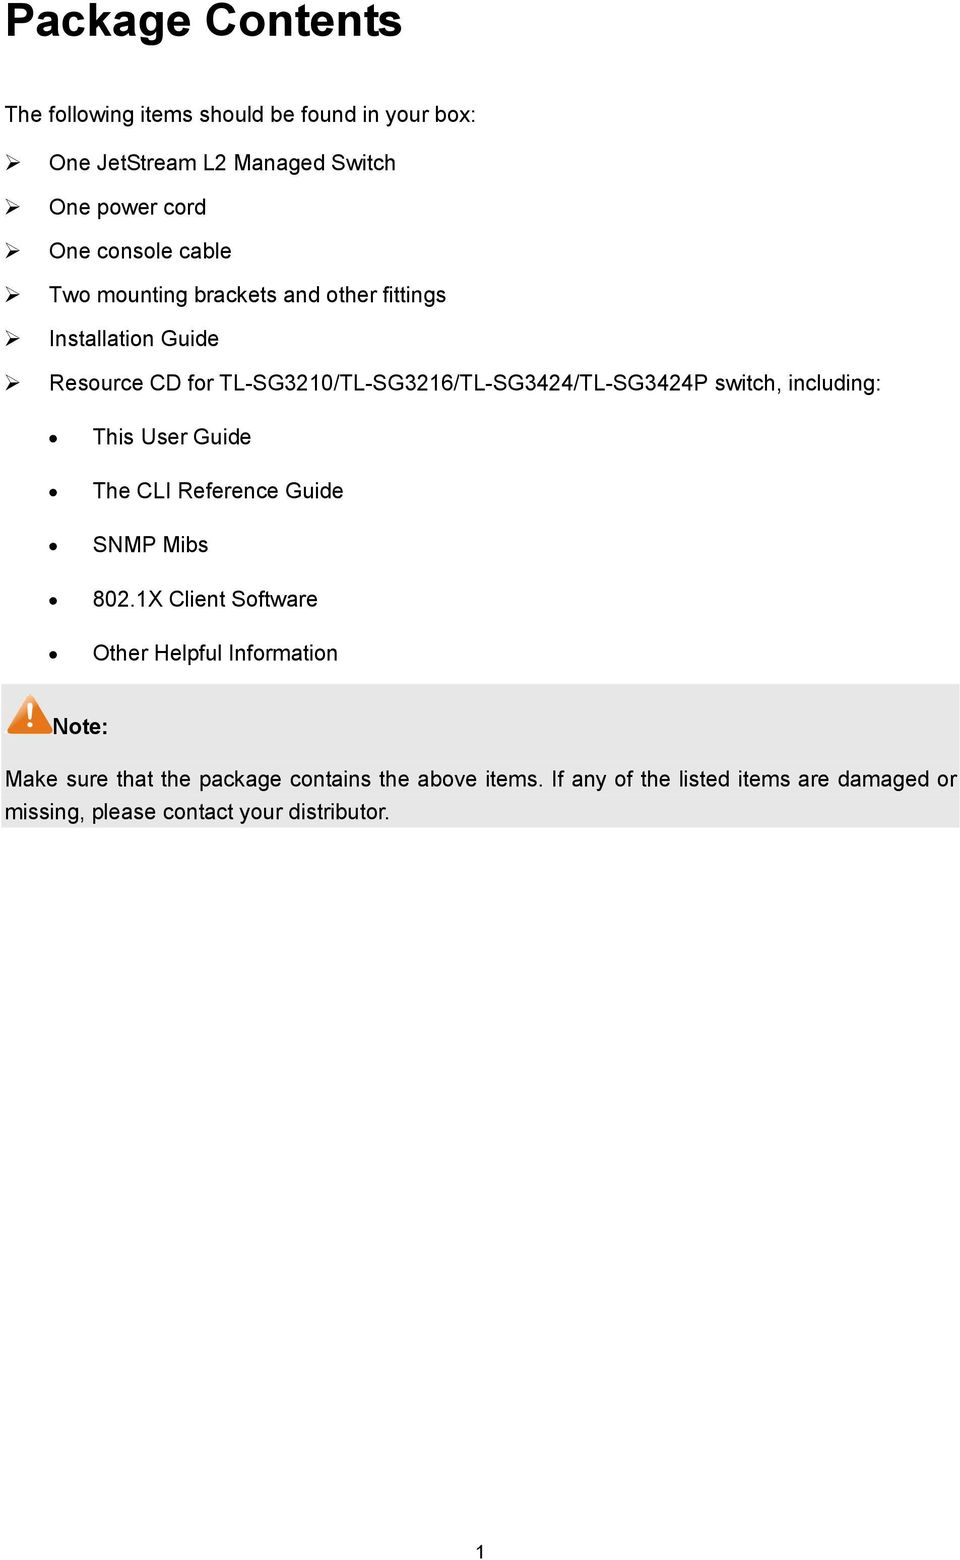 switch, including: This User Guide The CLI Reference Guide SNMP Mibs 802.